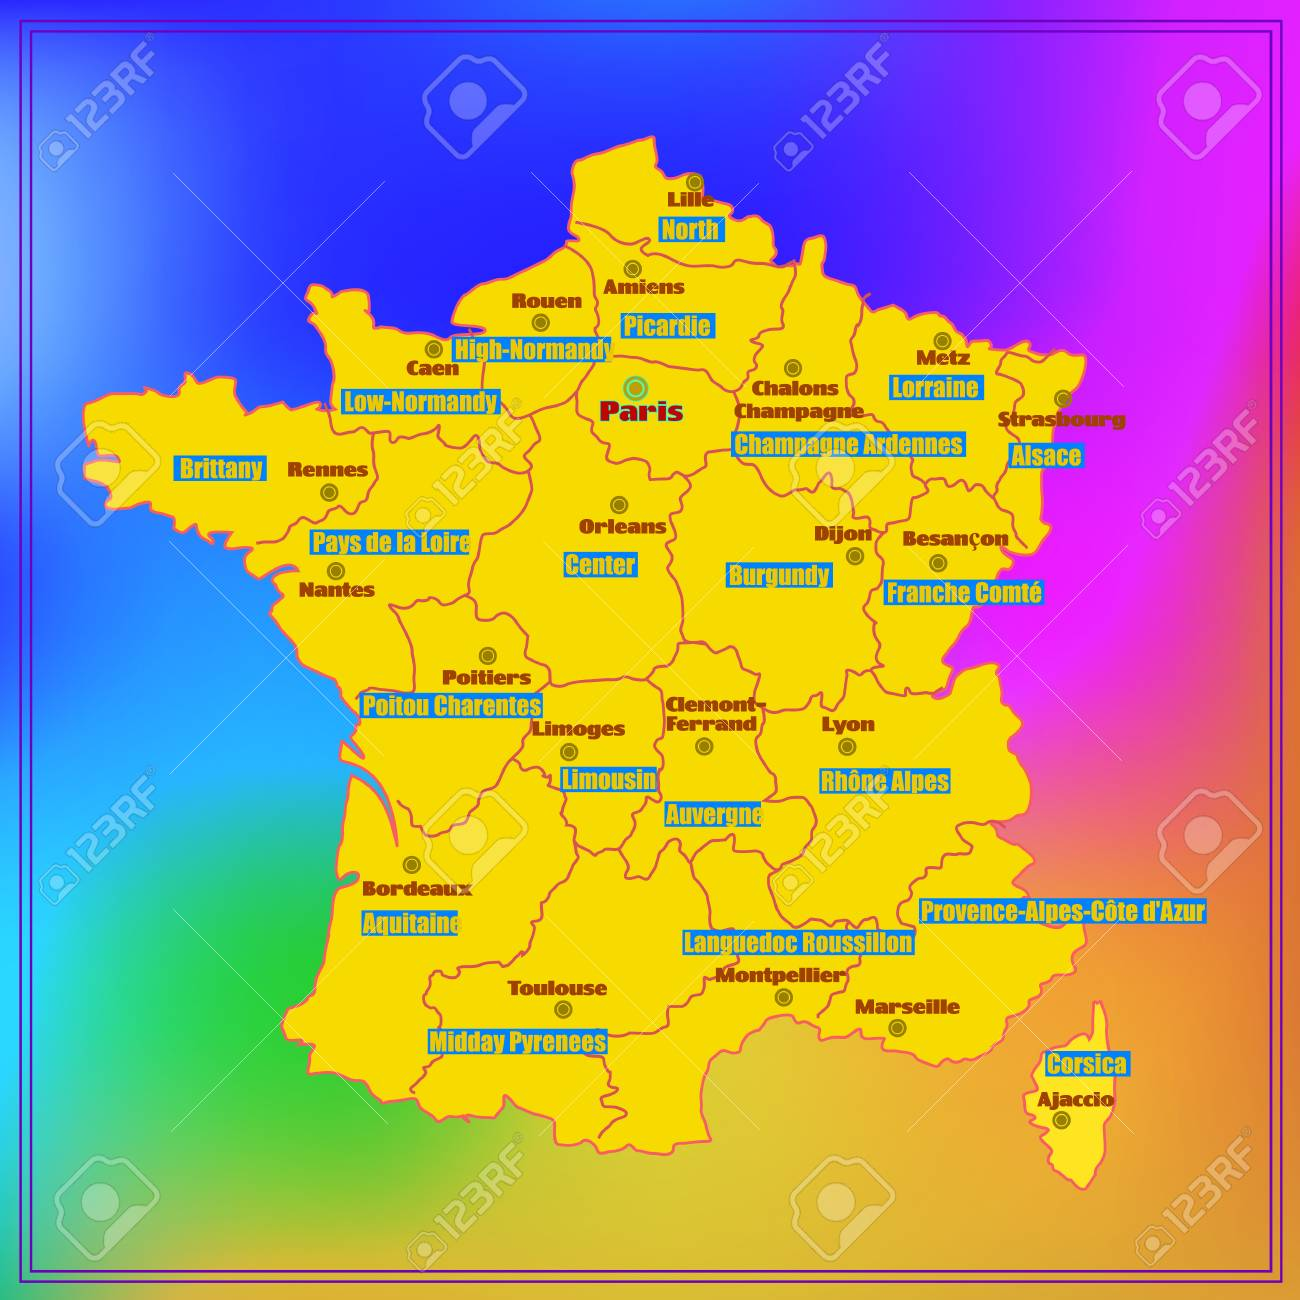 Map Of Major Cities In France.Stock Illustration